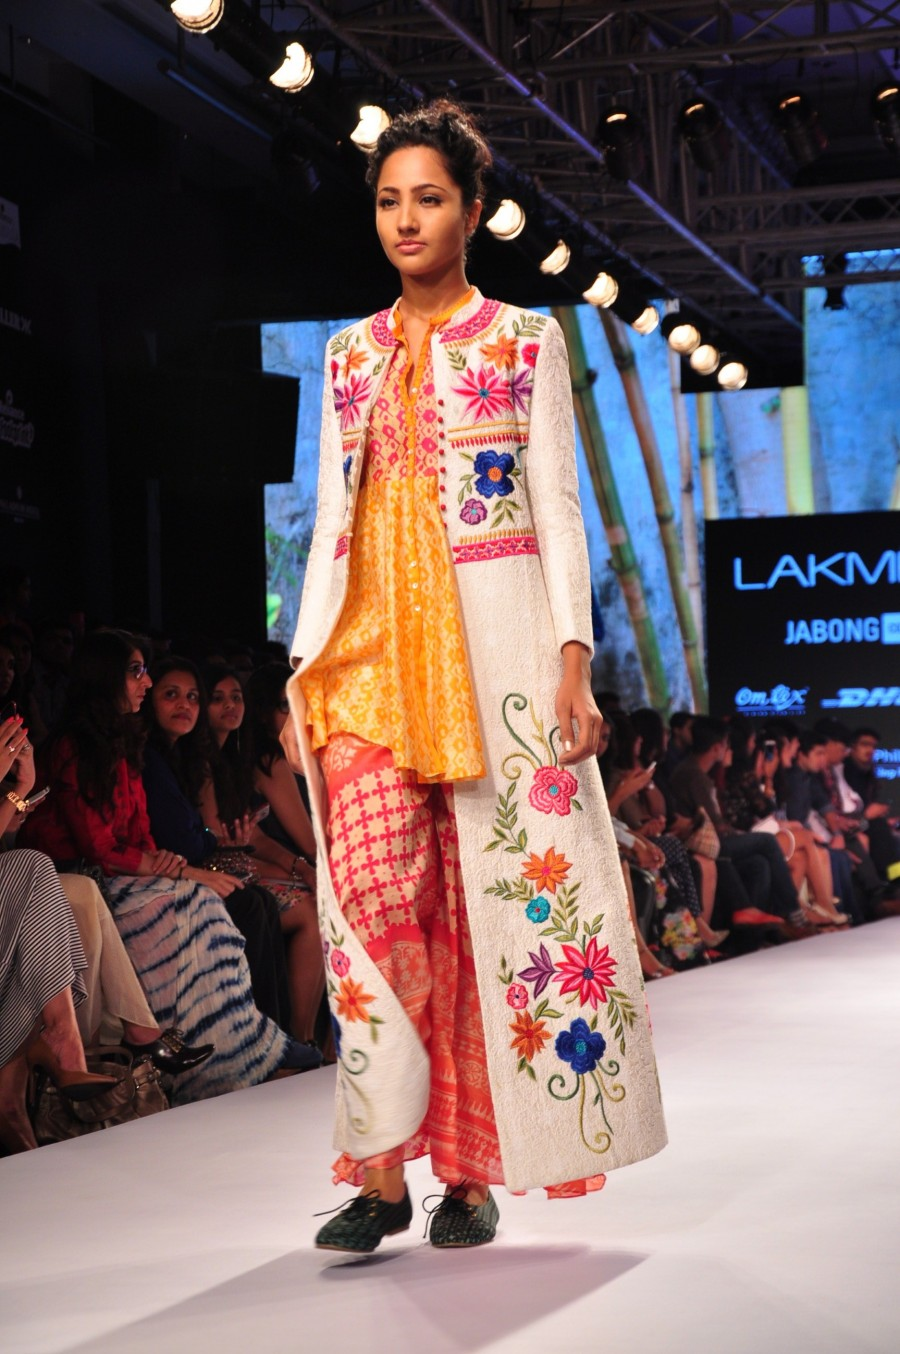 Lakme Fashion Week 2015,LFW2015,#LakmeFashionWeek,manish malhotra,designers,day 1,night show,fashion show,blue runway,photos